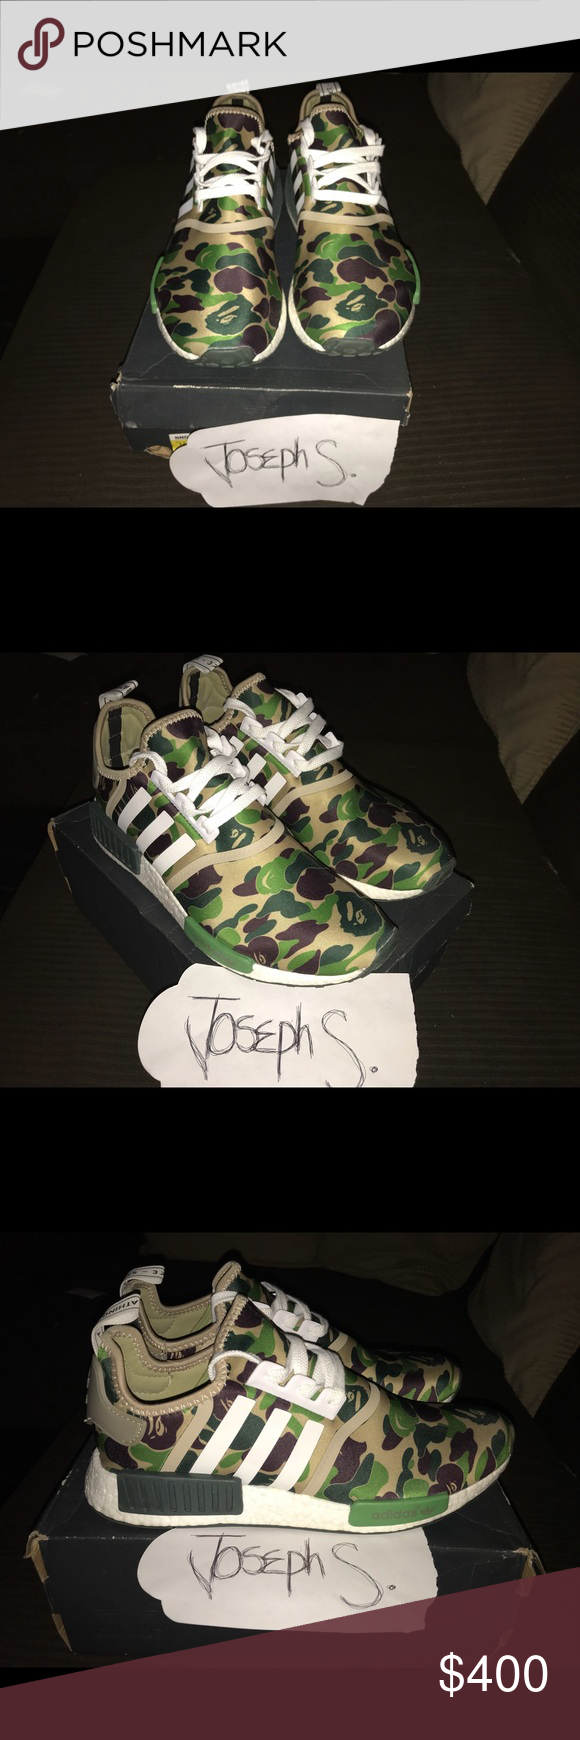 8be27ecdf Bape X Adidas NMD Text me with offers and can sell outside of Poshmark  7one9 3zero8 0zero6three Bape Shoes Athletic Shoes